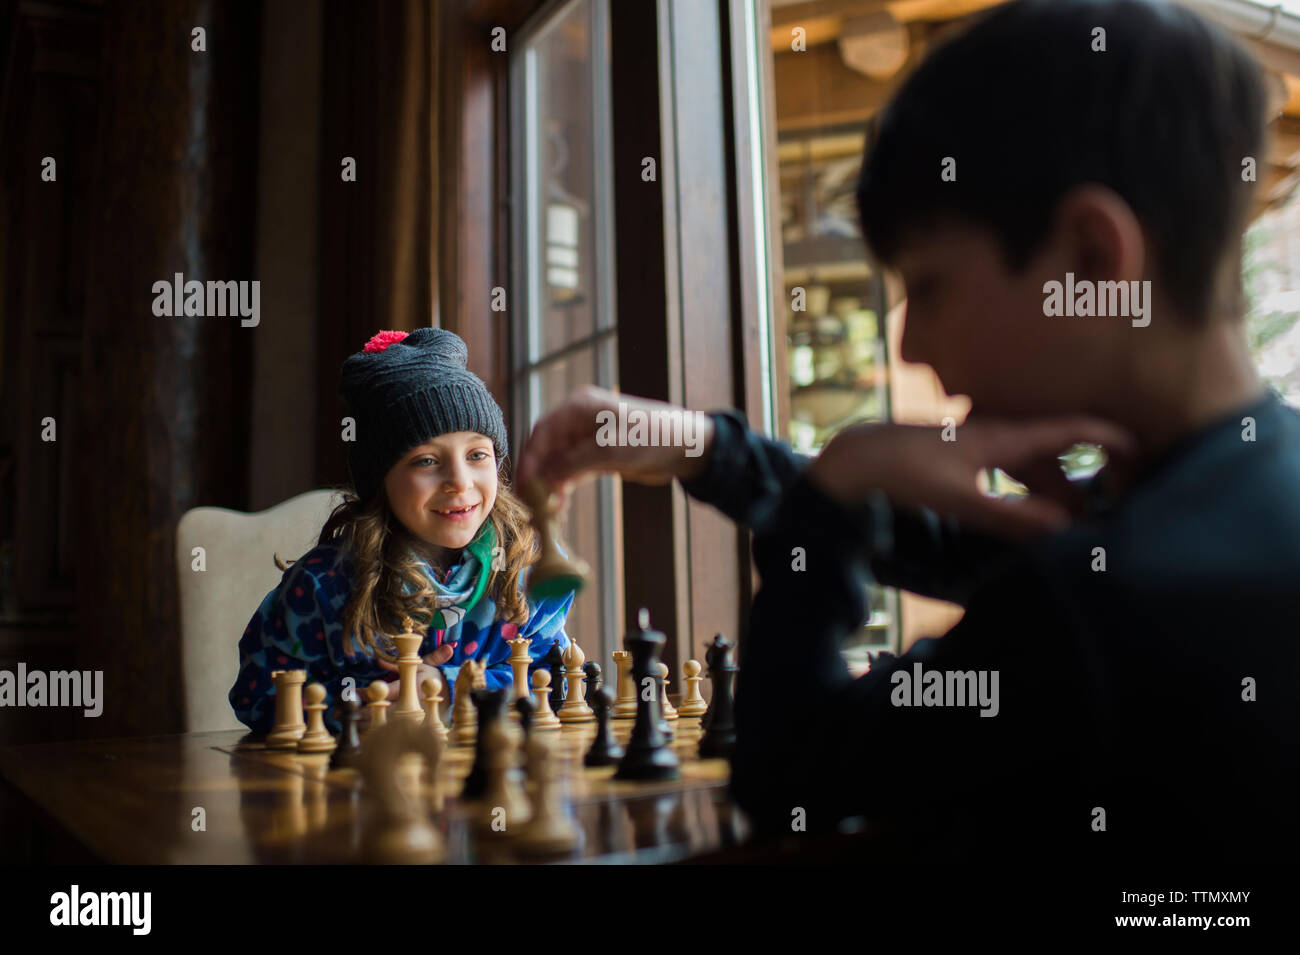 Siblings playing chess by window at home - Stock Image